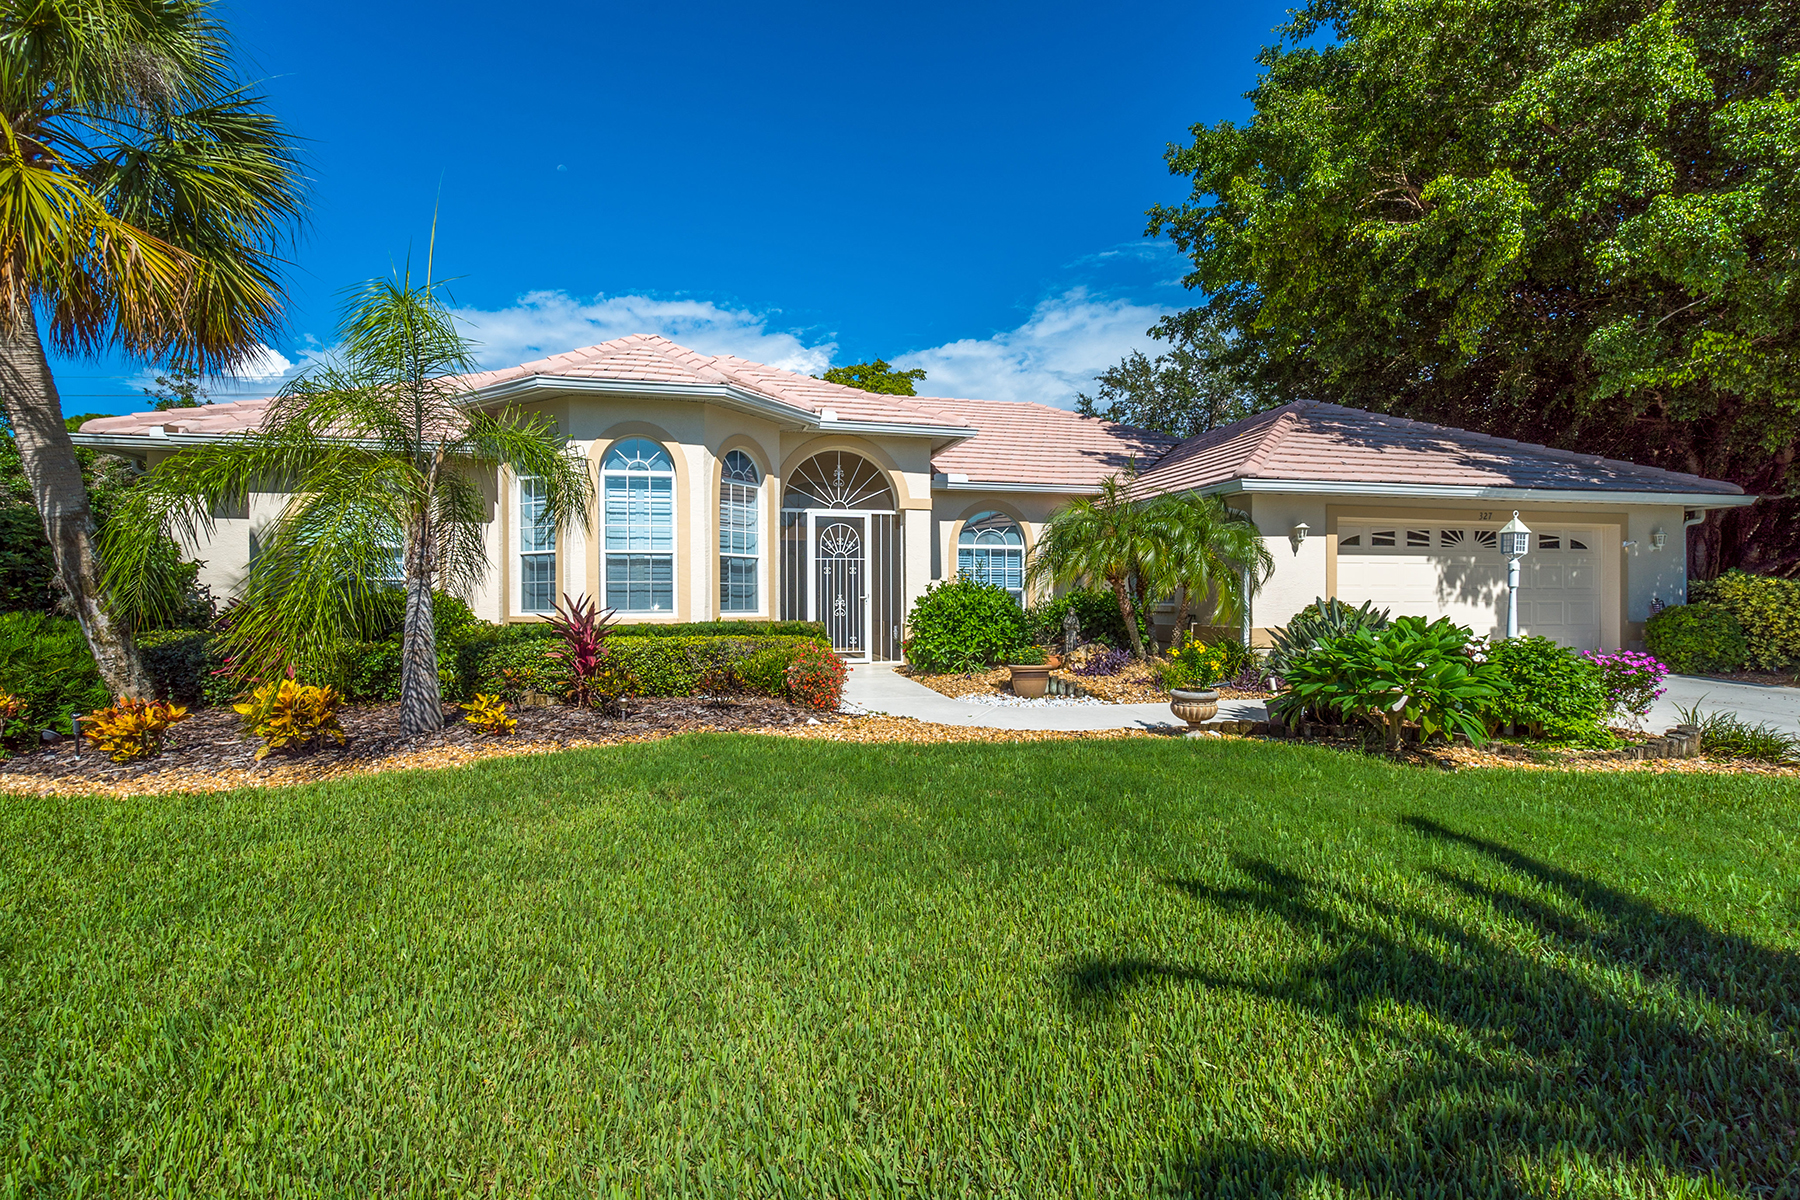 Single Family Home for Sale at SHORE OAKS 327 Dulmer Dr Nokomis, Florida, 34275 United States